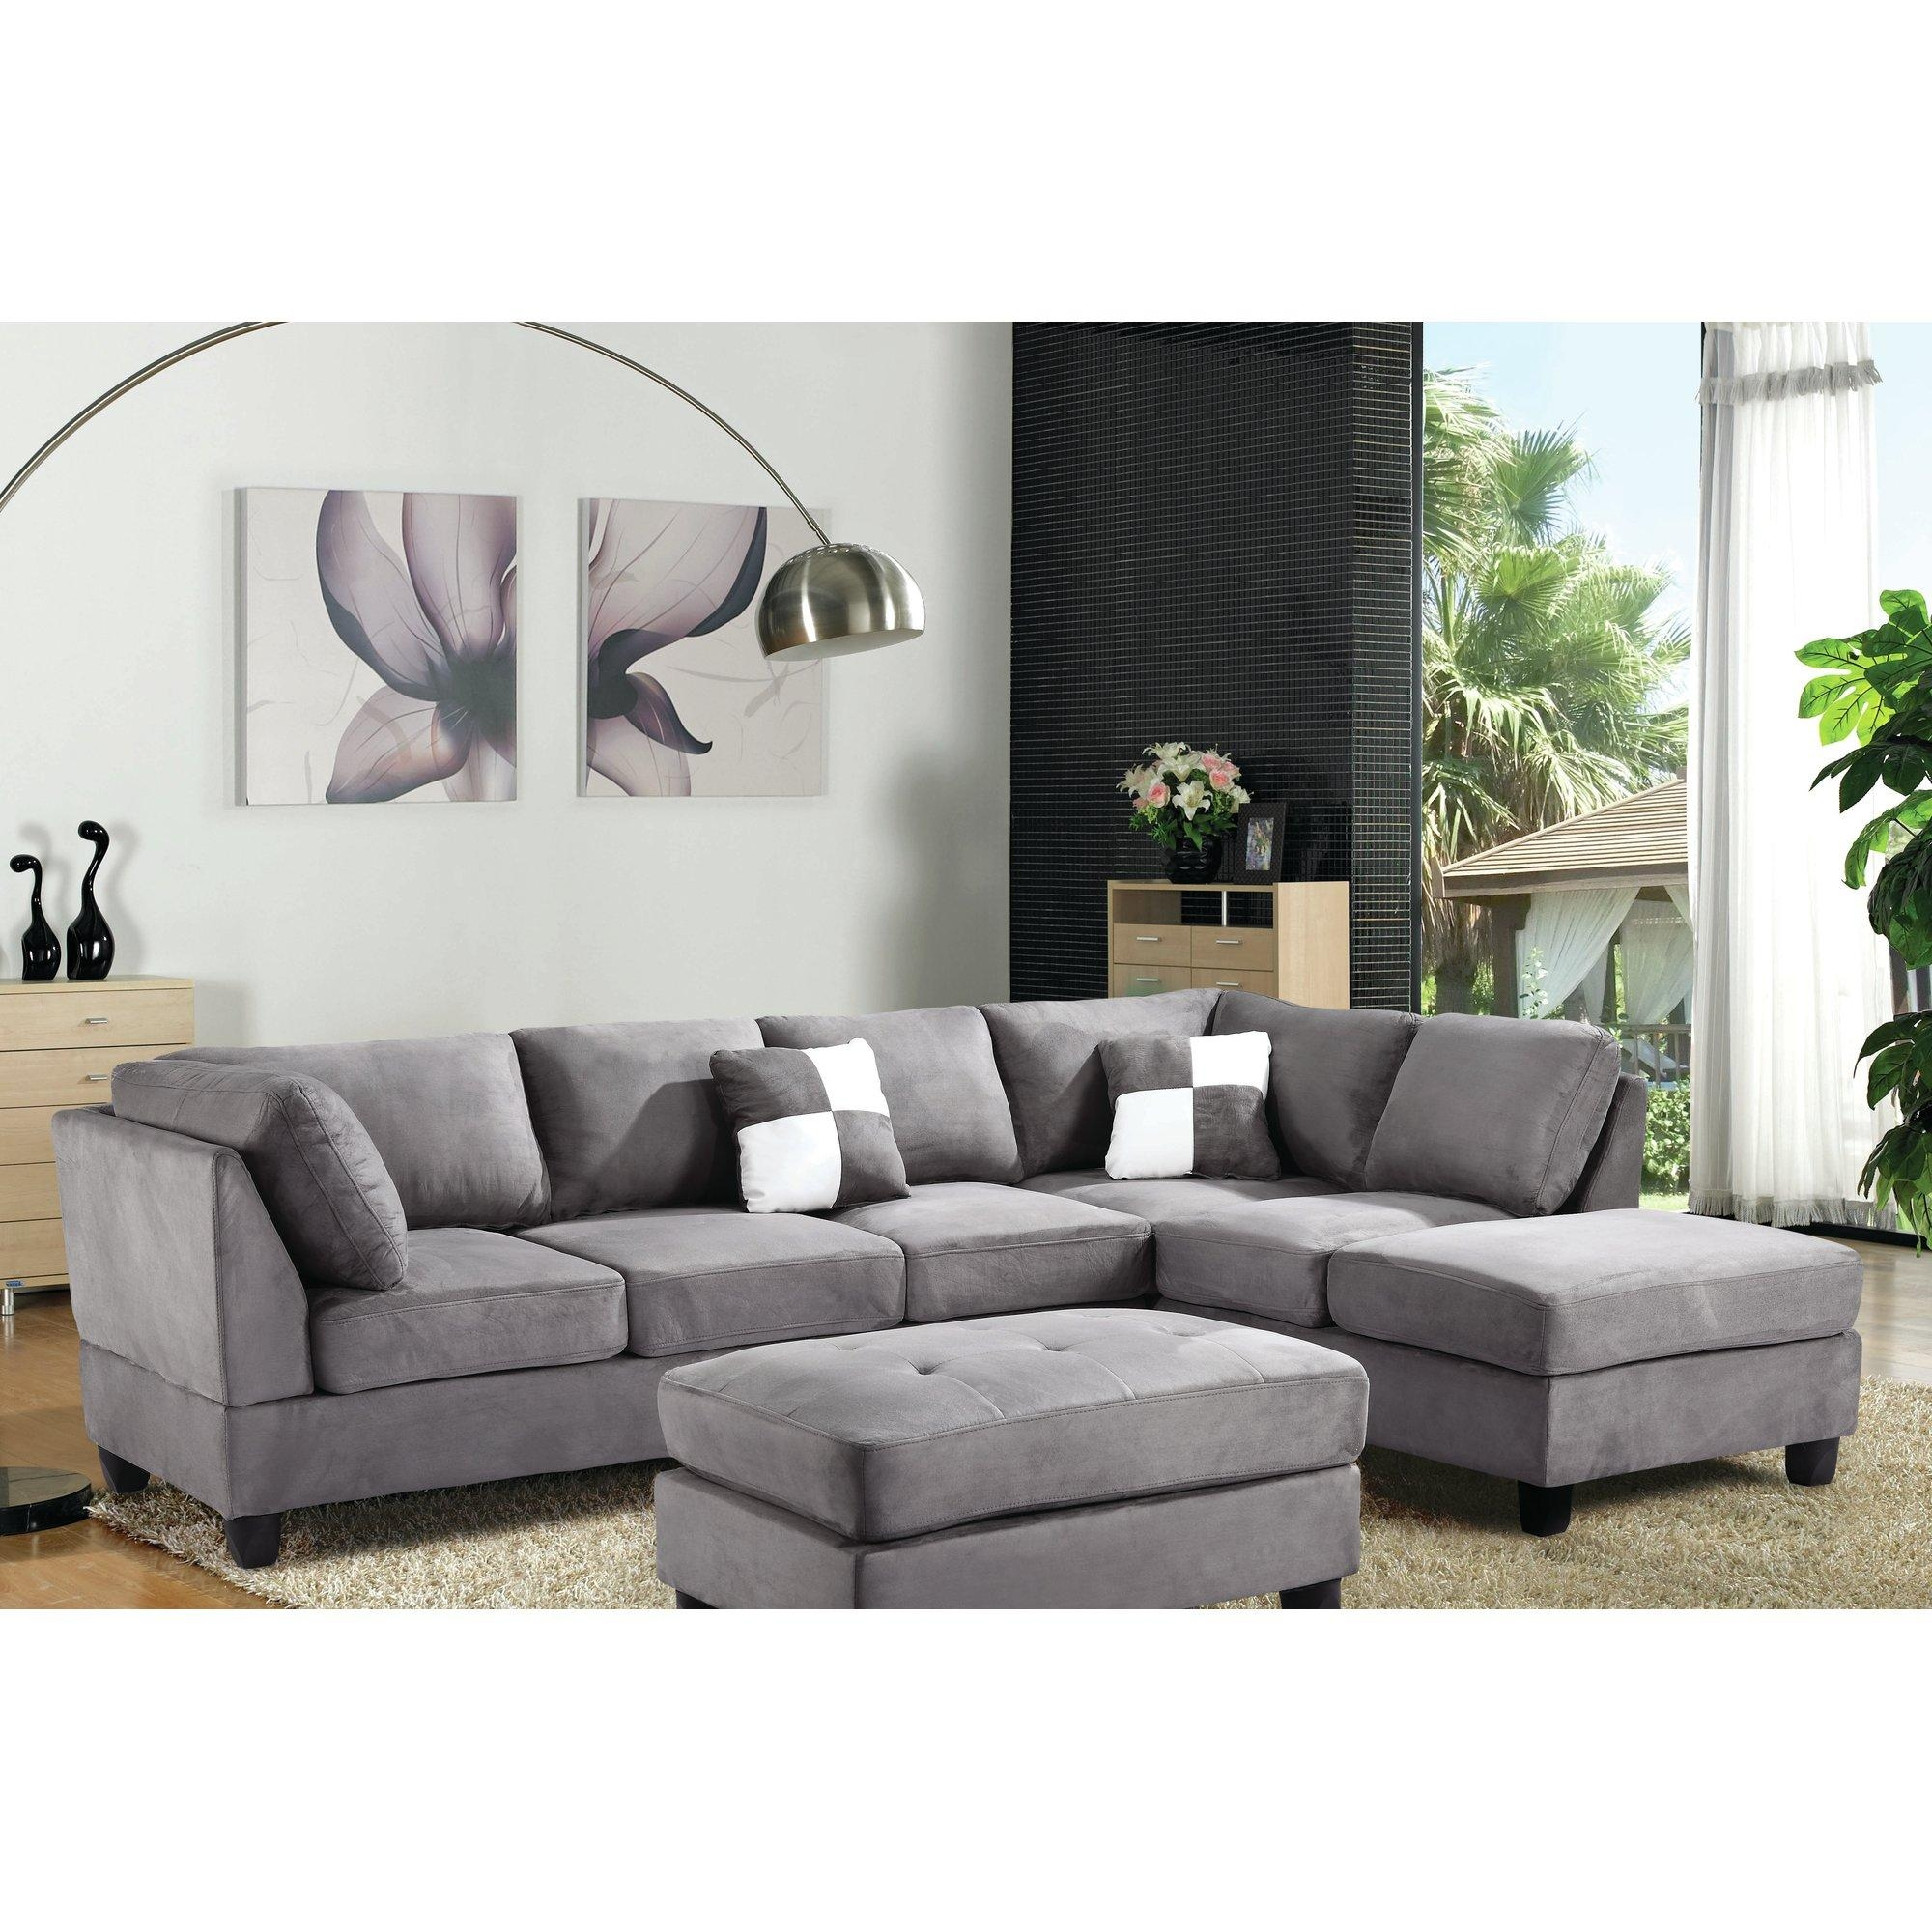 Furniture: Reversible Chaise Sectional | Sectional Sofa Walmart For Tufted Sectional With Chaise (Image 11 of 20)